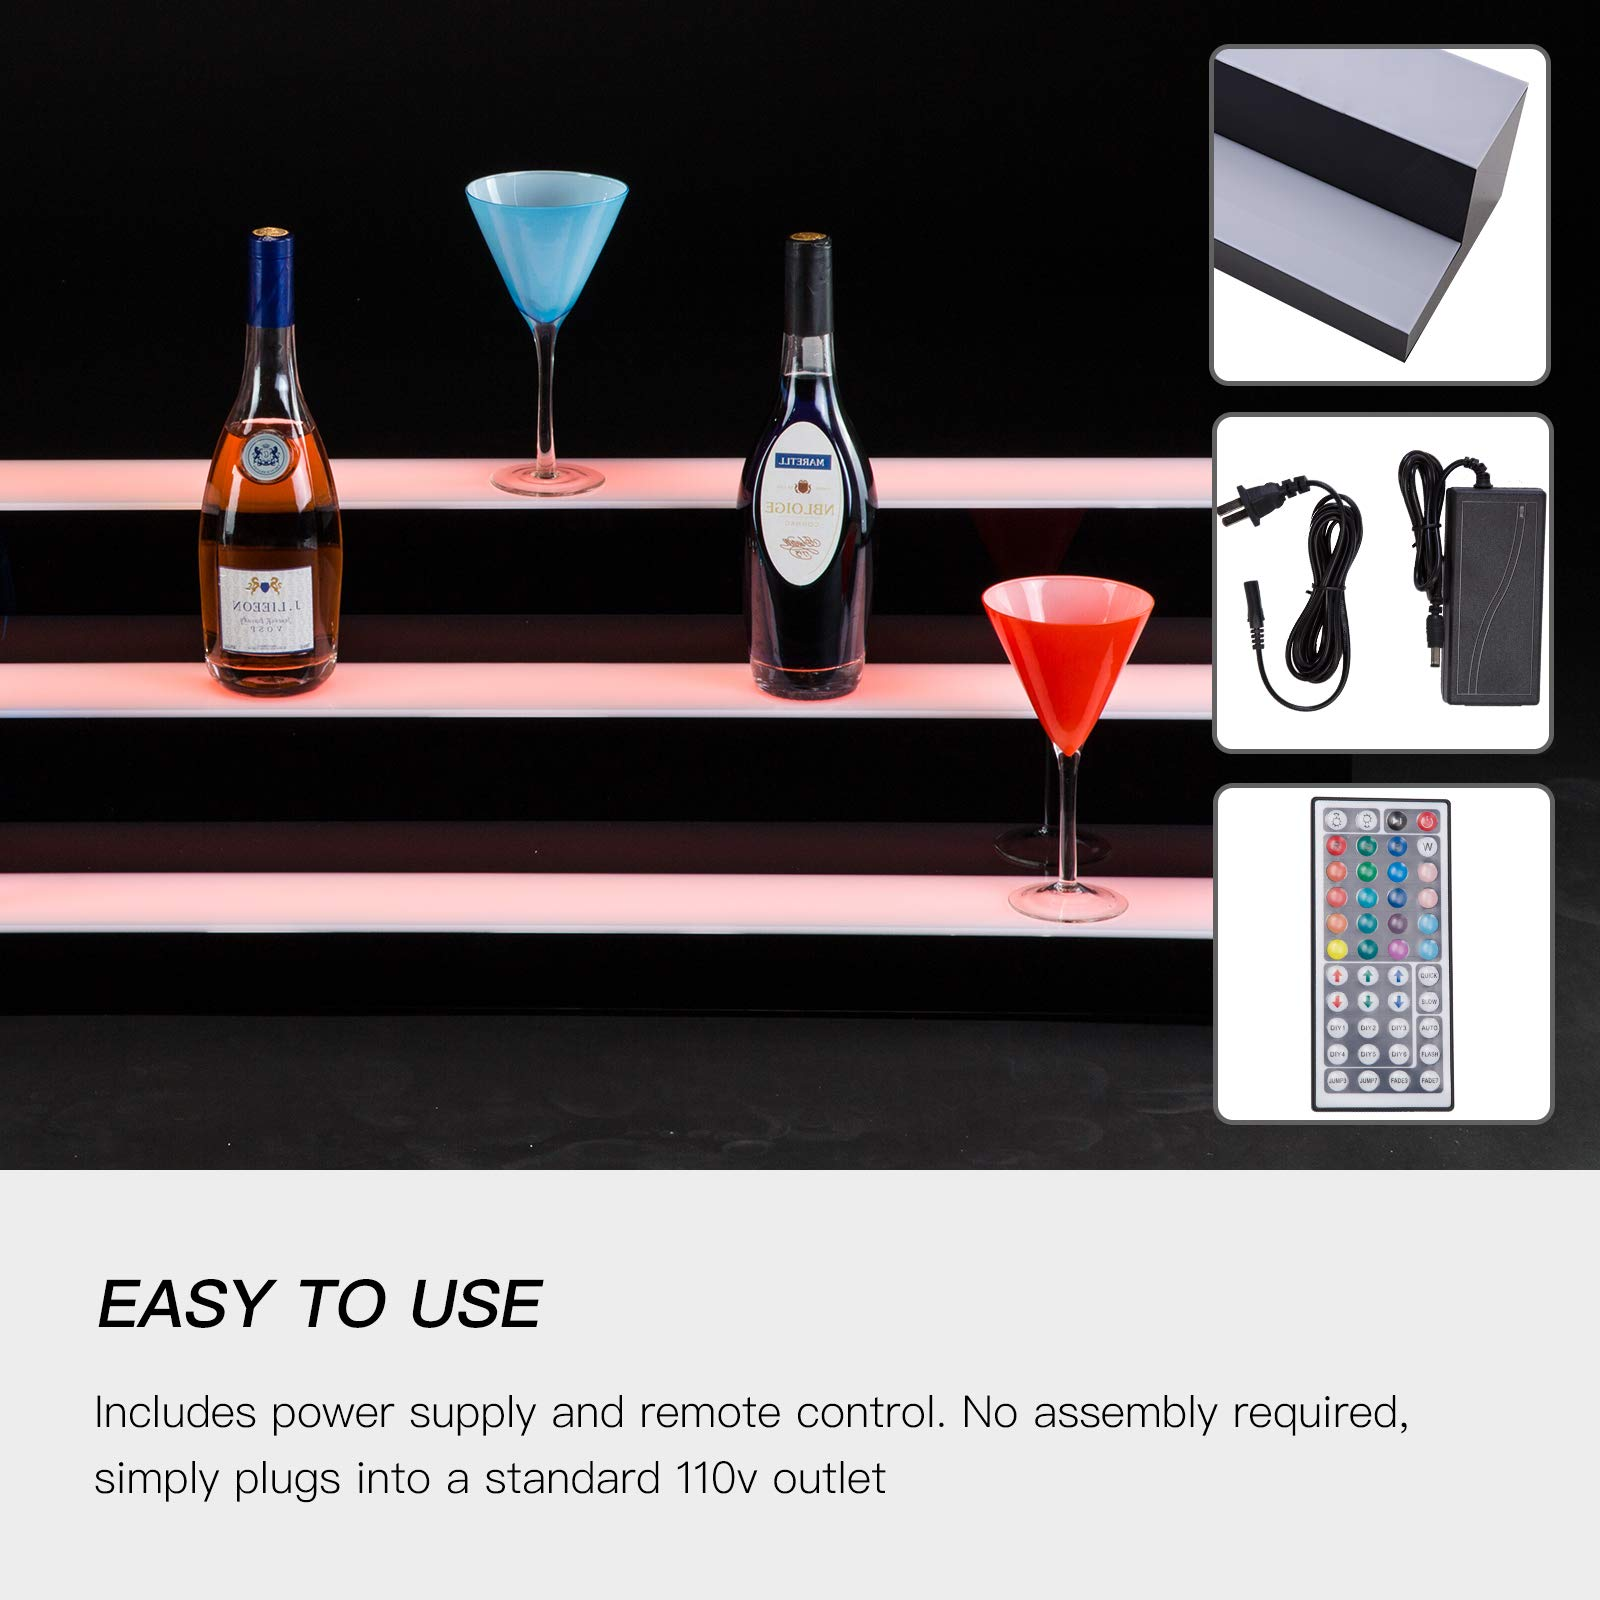 SUNCOO LED Lighted Liquor Bottle Display 60'' 3 Step Illuminated Bottle Shelf 3 Tier Home Bar Bottle Shelf Drinks Lighting Shelves with Remote Control by SUNCOO (Image #3)